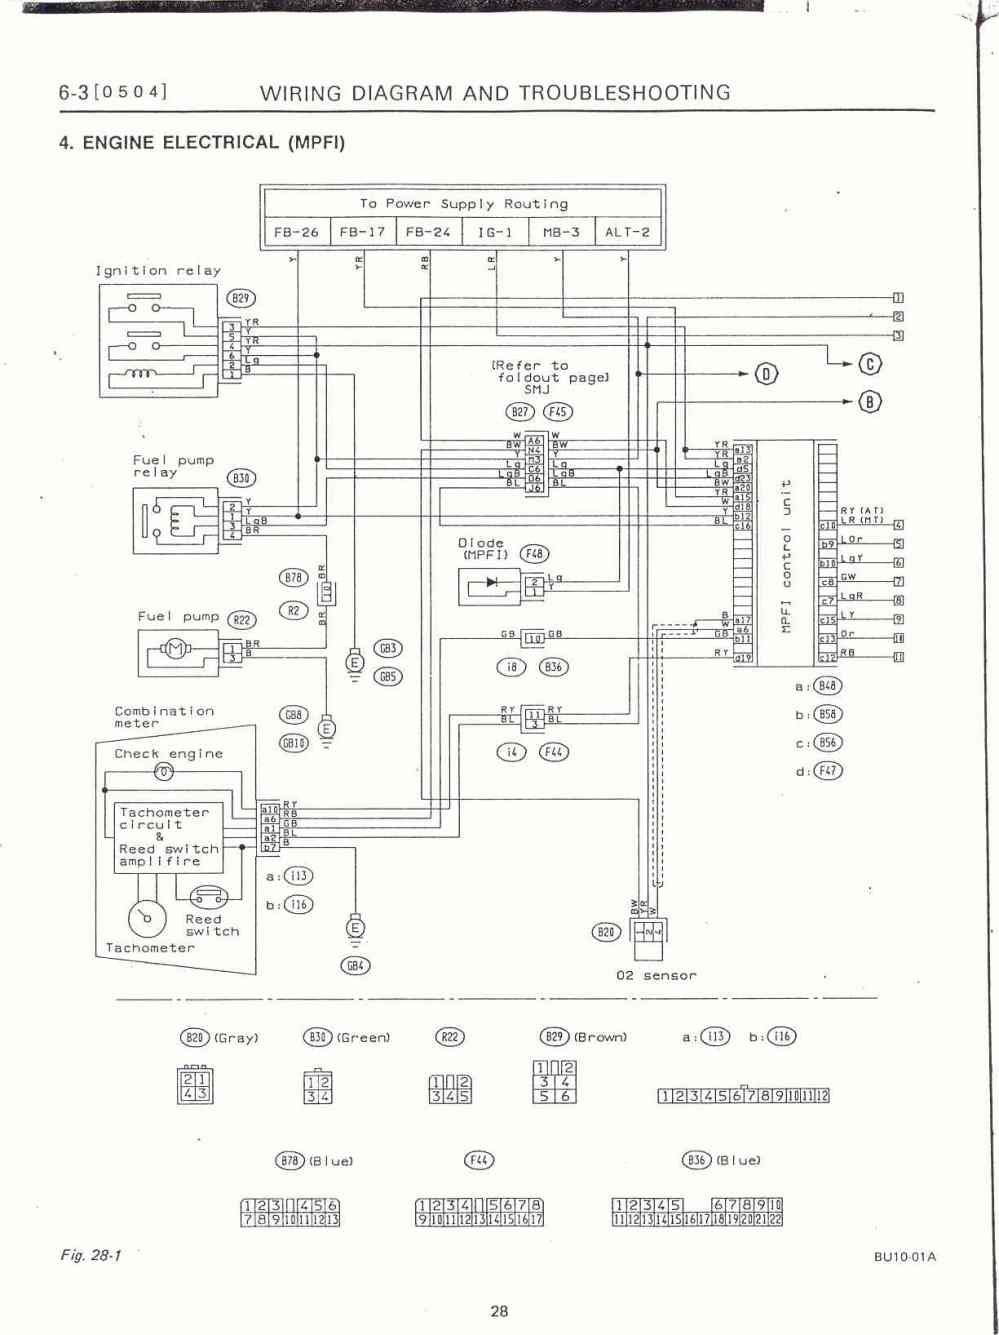 medium resolution of engine electrical page 1